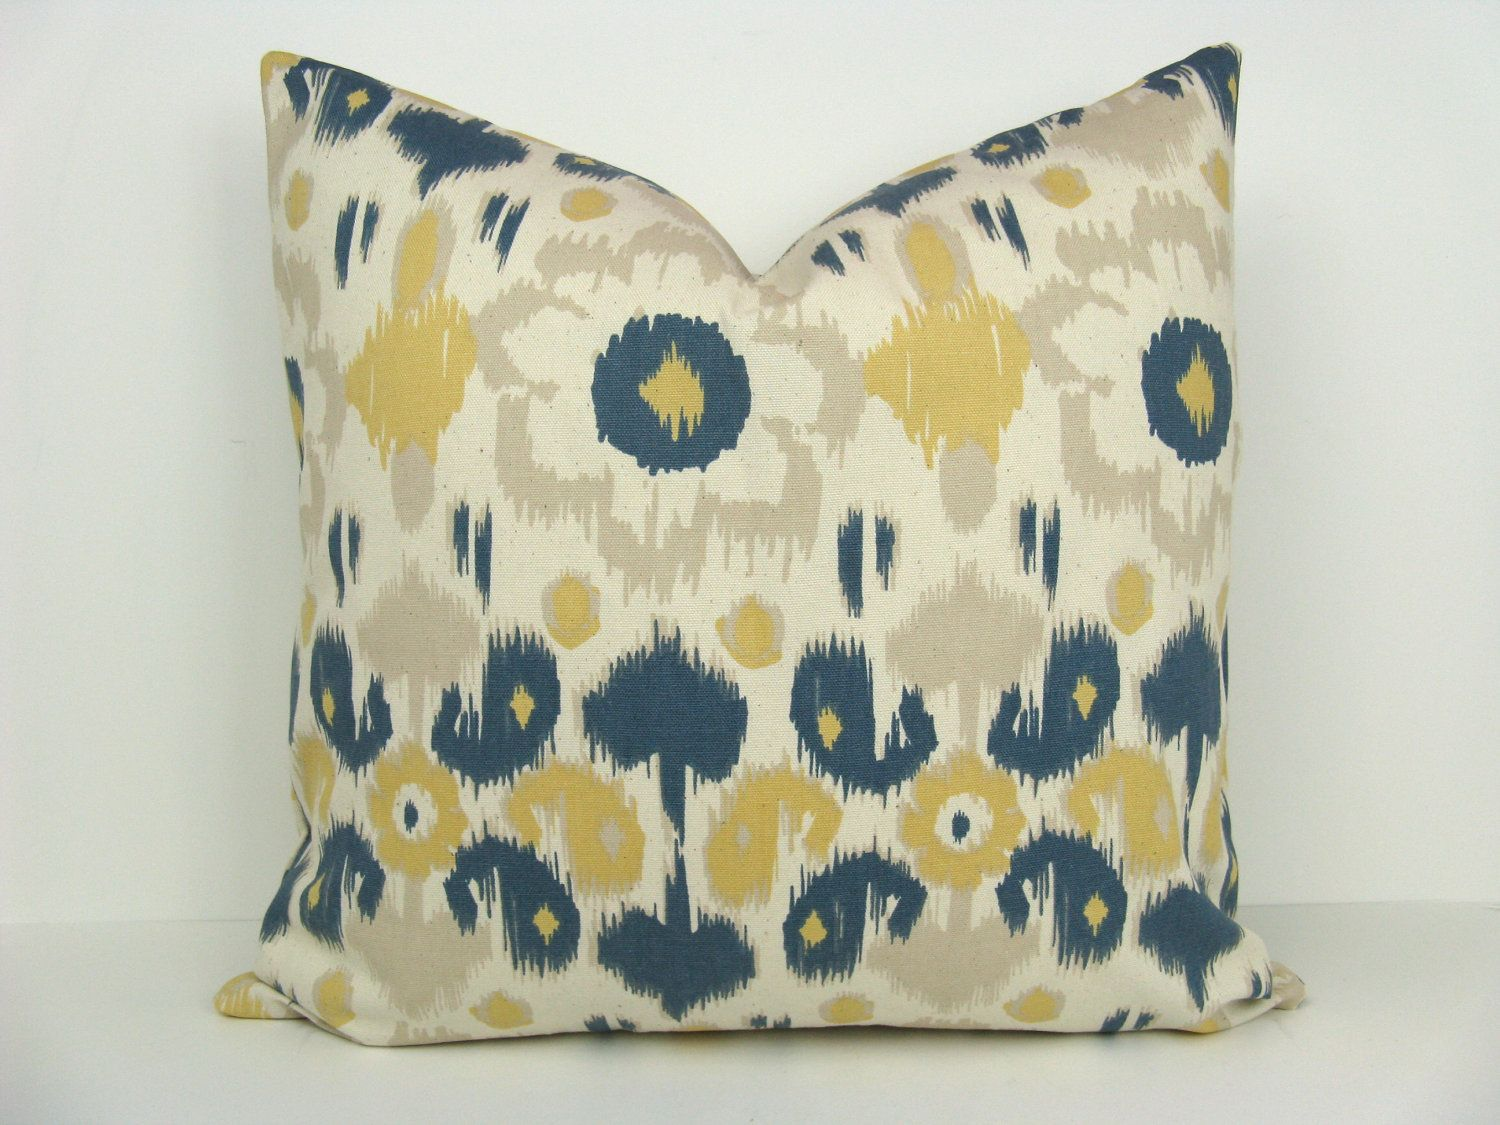 Navy blue and yellow decorative pillows - Ikat Pillow Ikat Pillow Cover Blue Ikat Pillow Throw Pillow Cover Yellow Pillow Blue Yellow Pillow Printed Fabric Both Sides